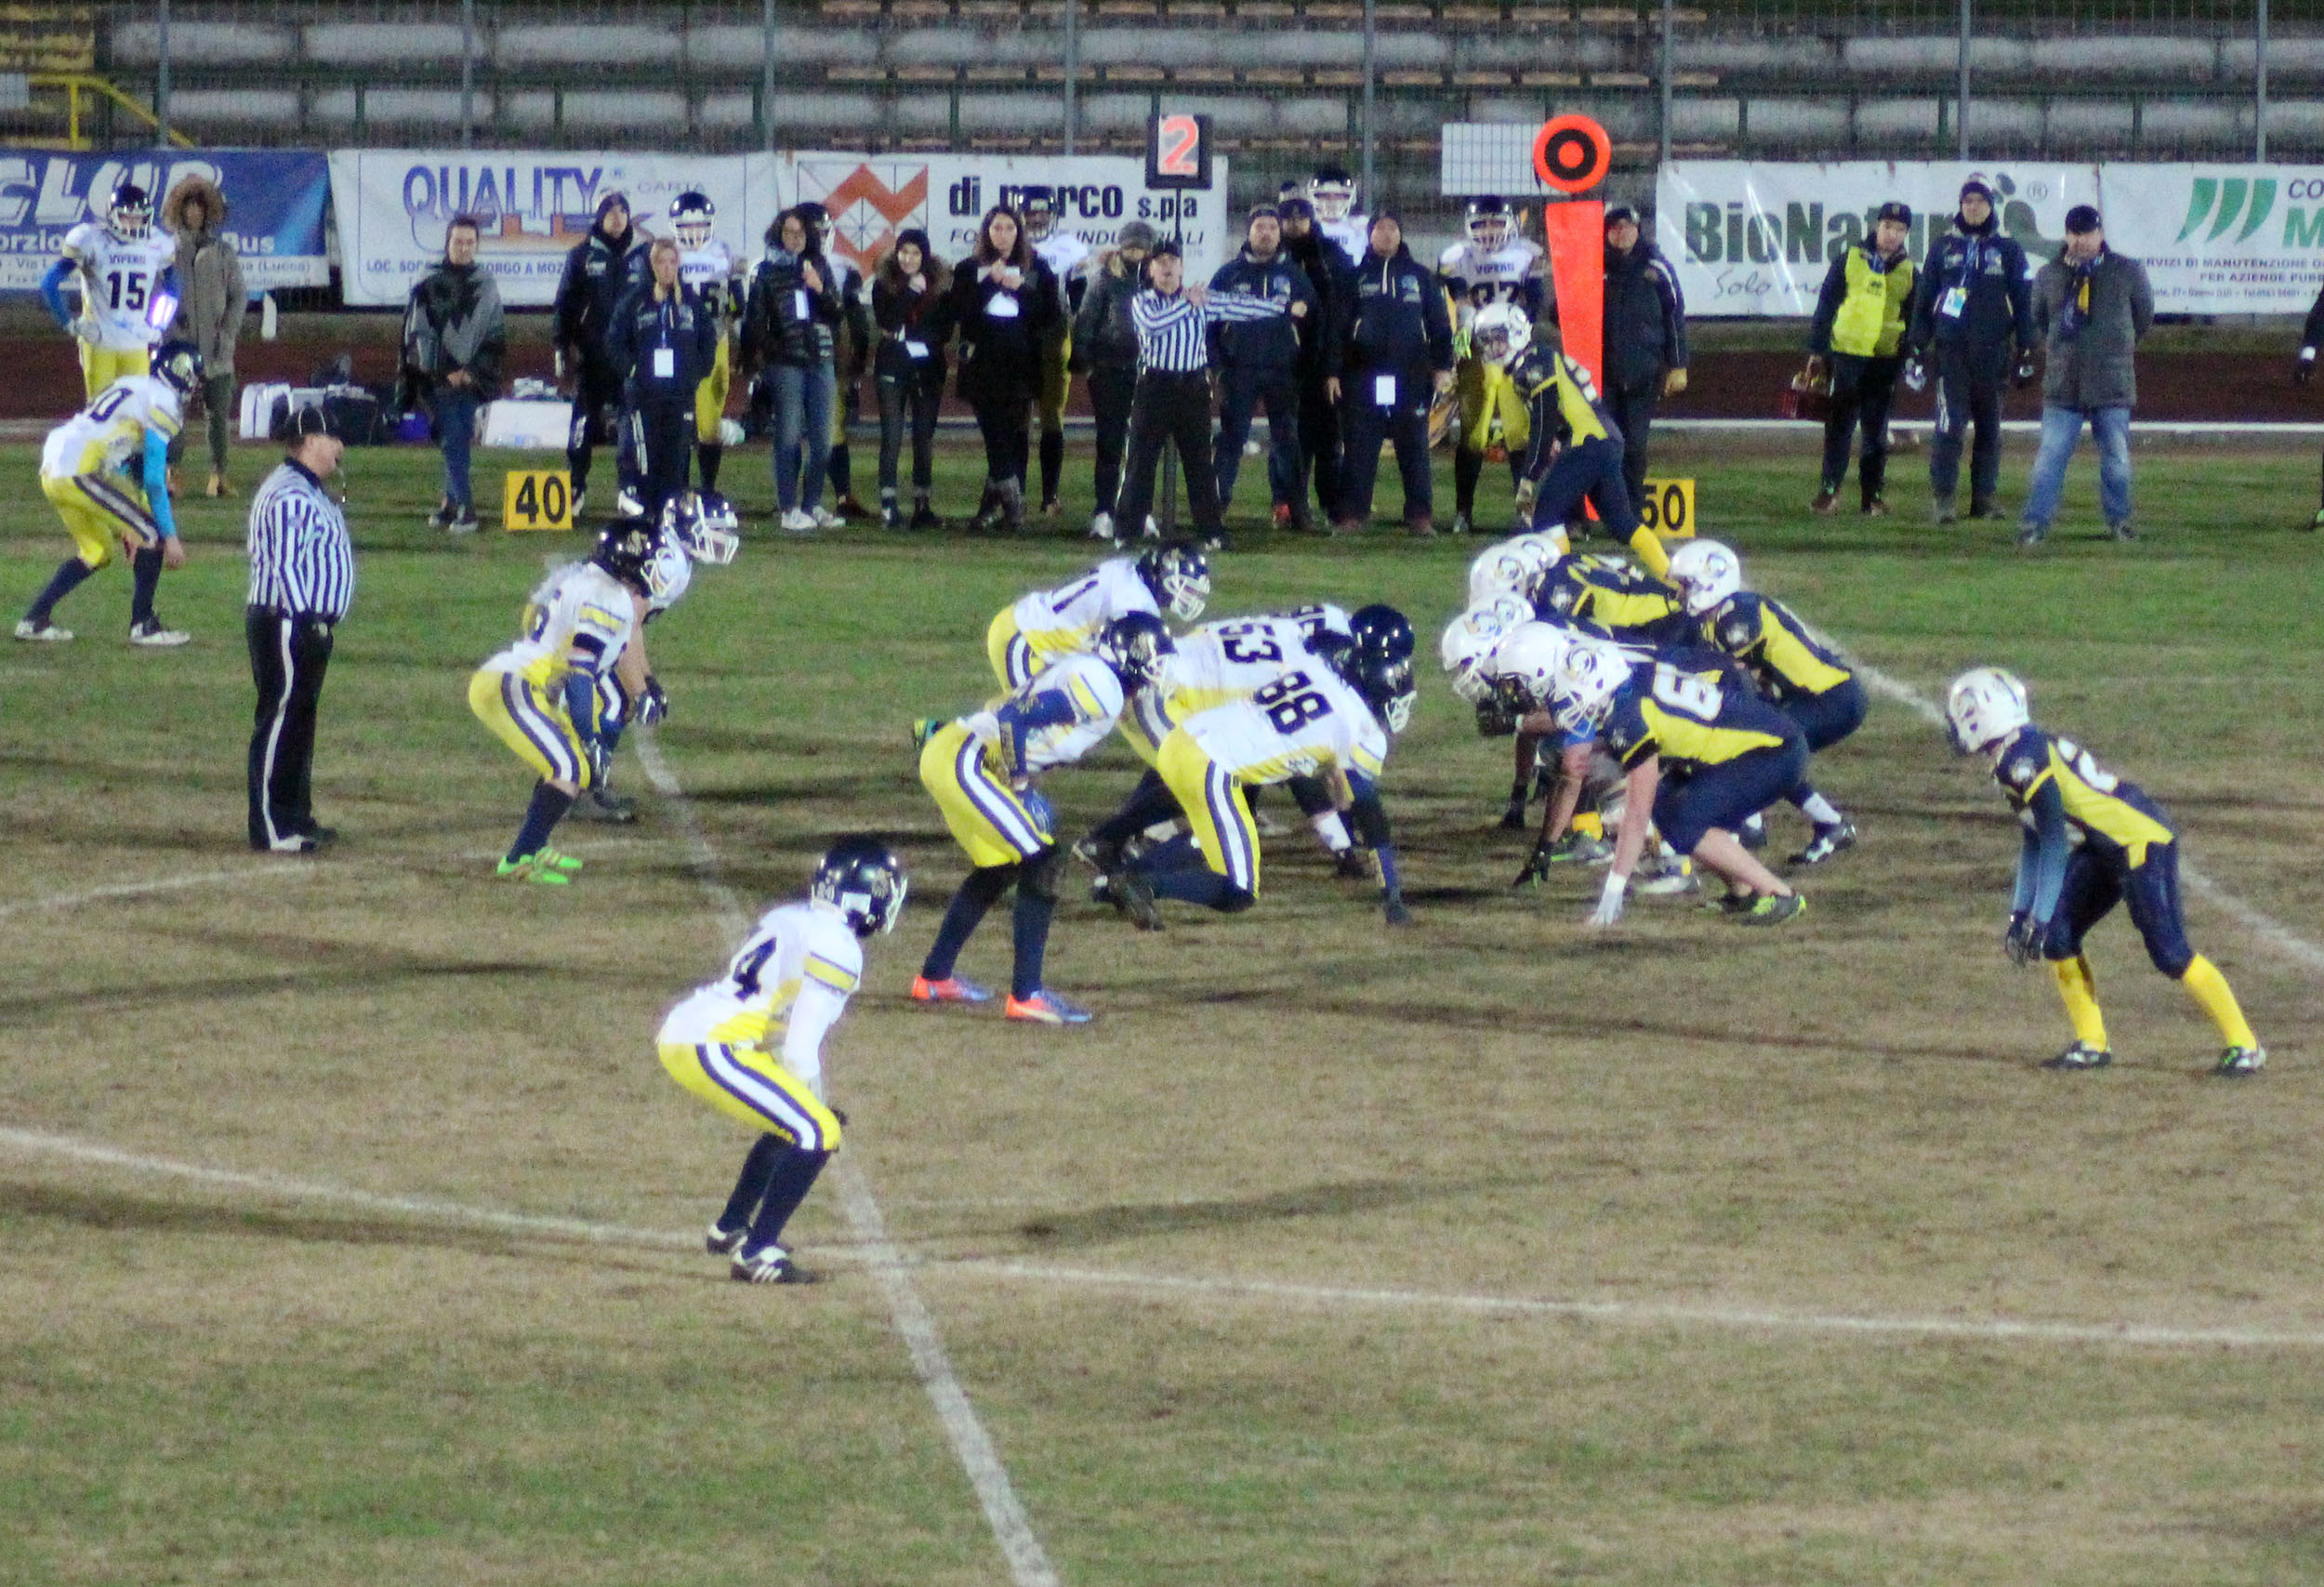 vipers-modena-6